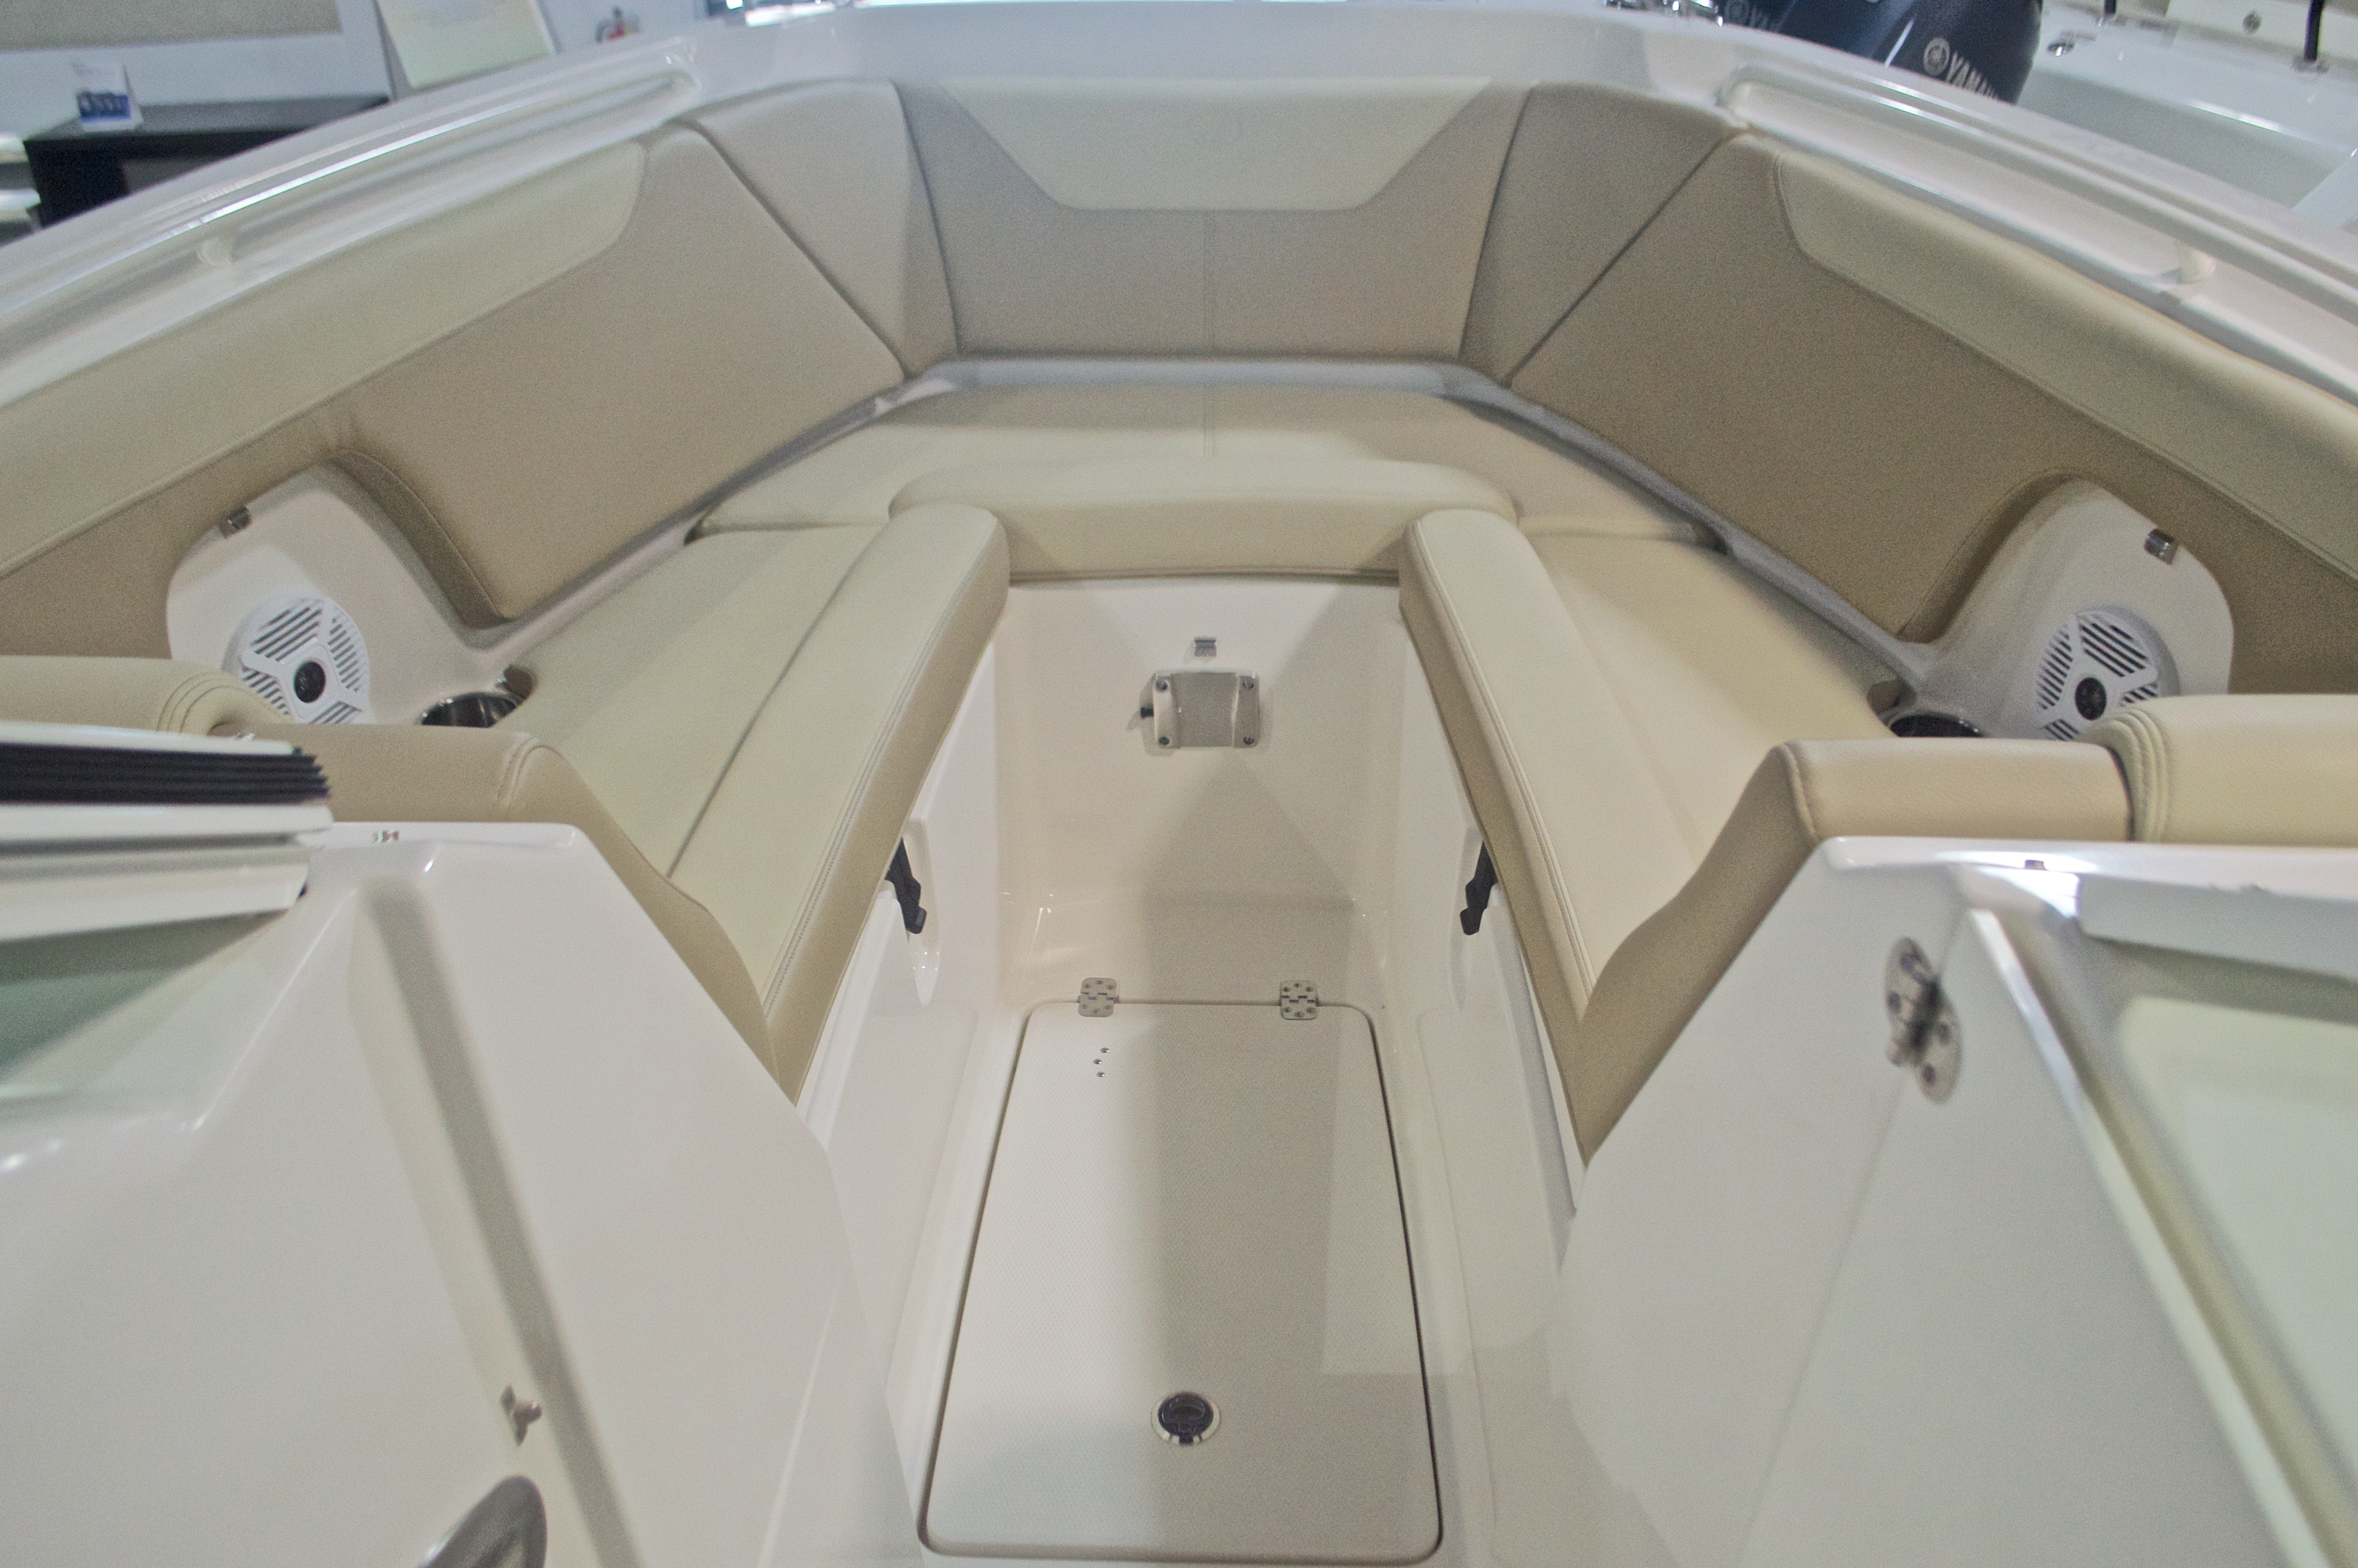 Thumbnail 45 for New 2017 Sailfish 275 Dual Console boat for sale in West Palm Beach, FL